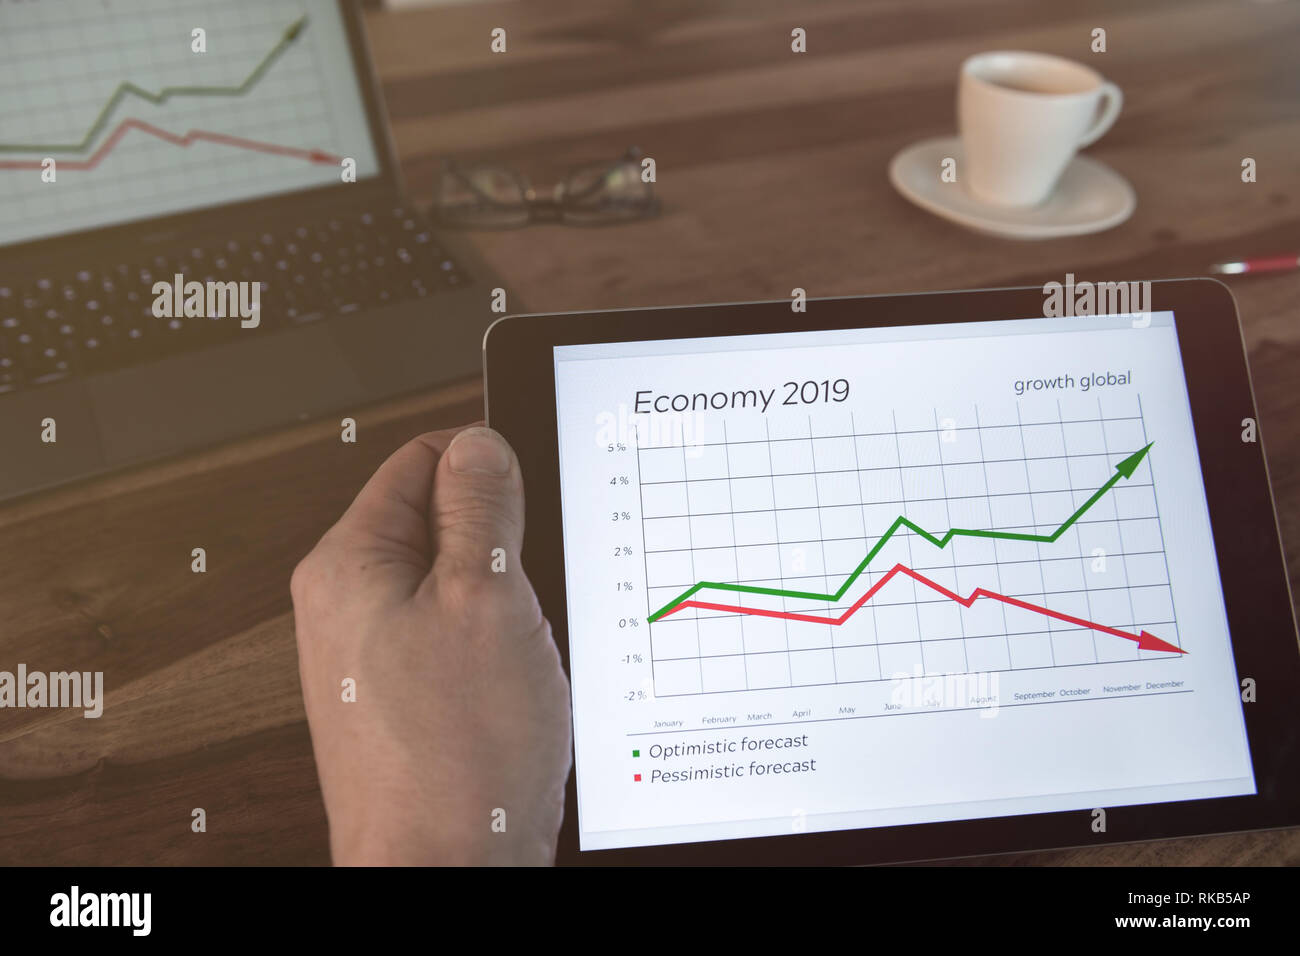 Man is sitting at the table with a tablet in his hand. Economic data is displayed. - Stock Image